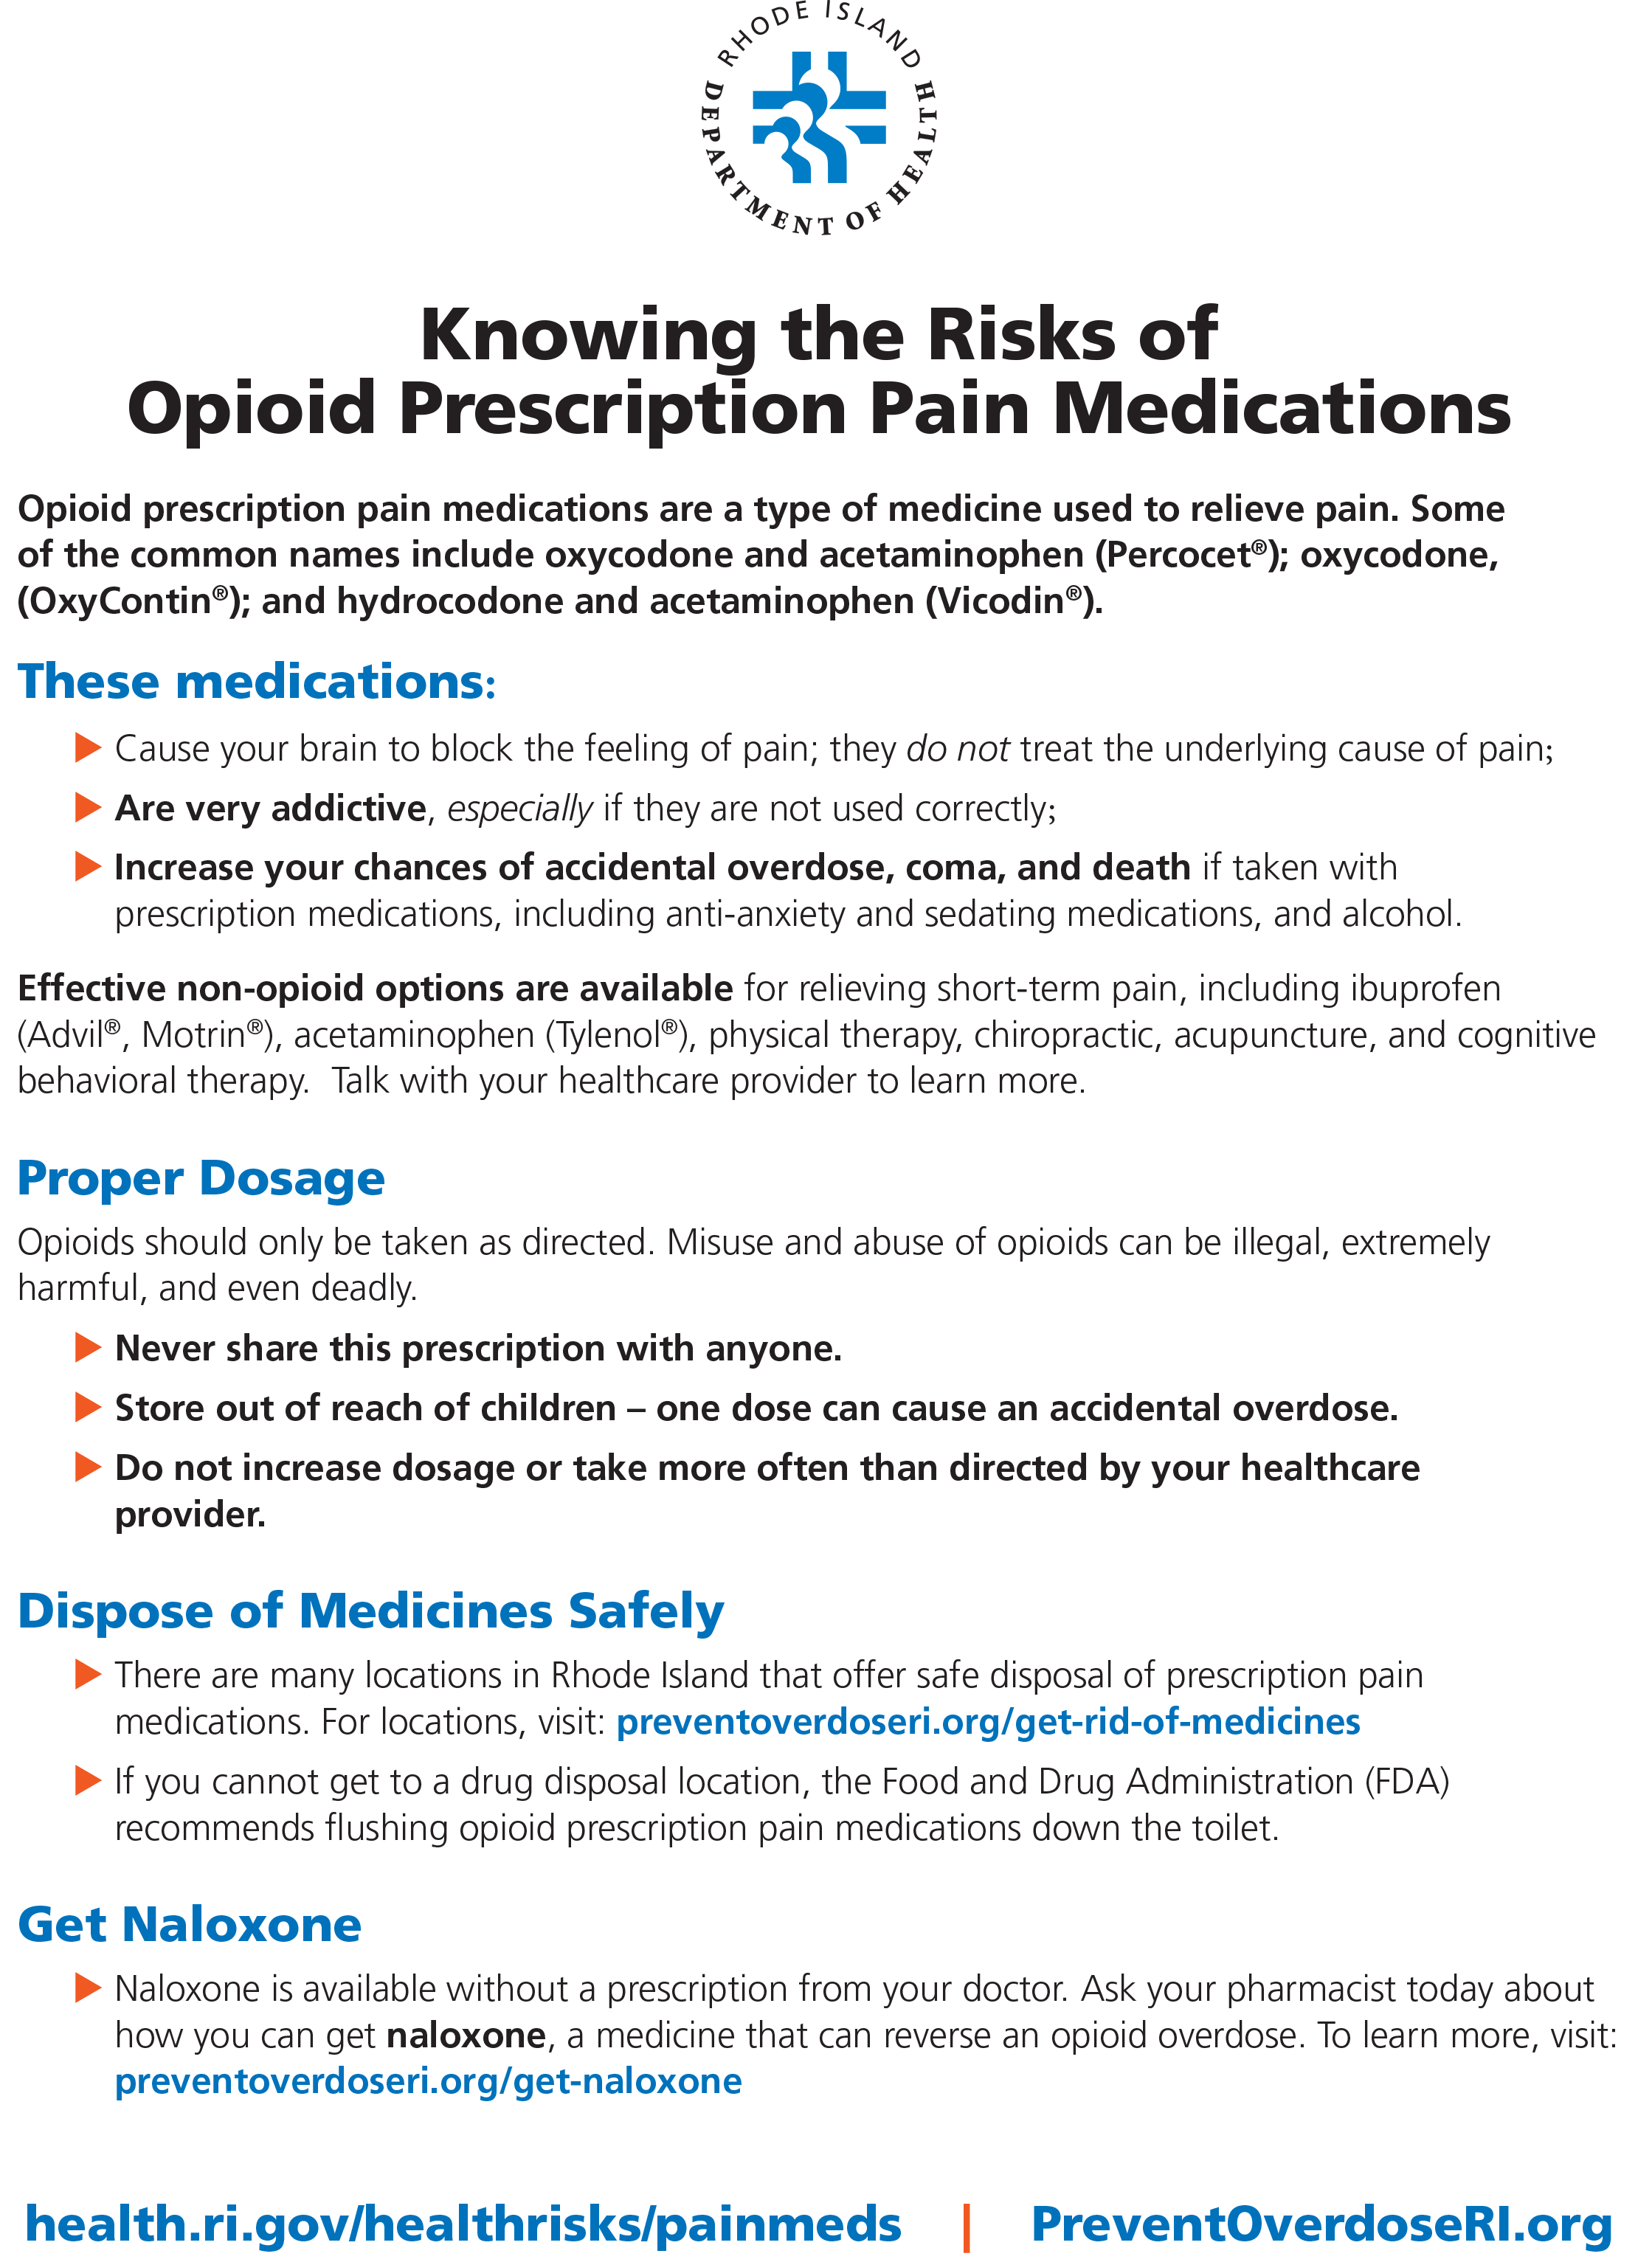 Knowing the Risks of Opioid Prescription Pain Medications 8 1/2 x 11